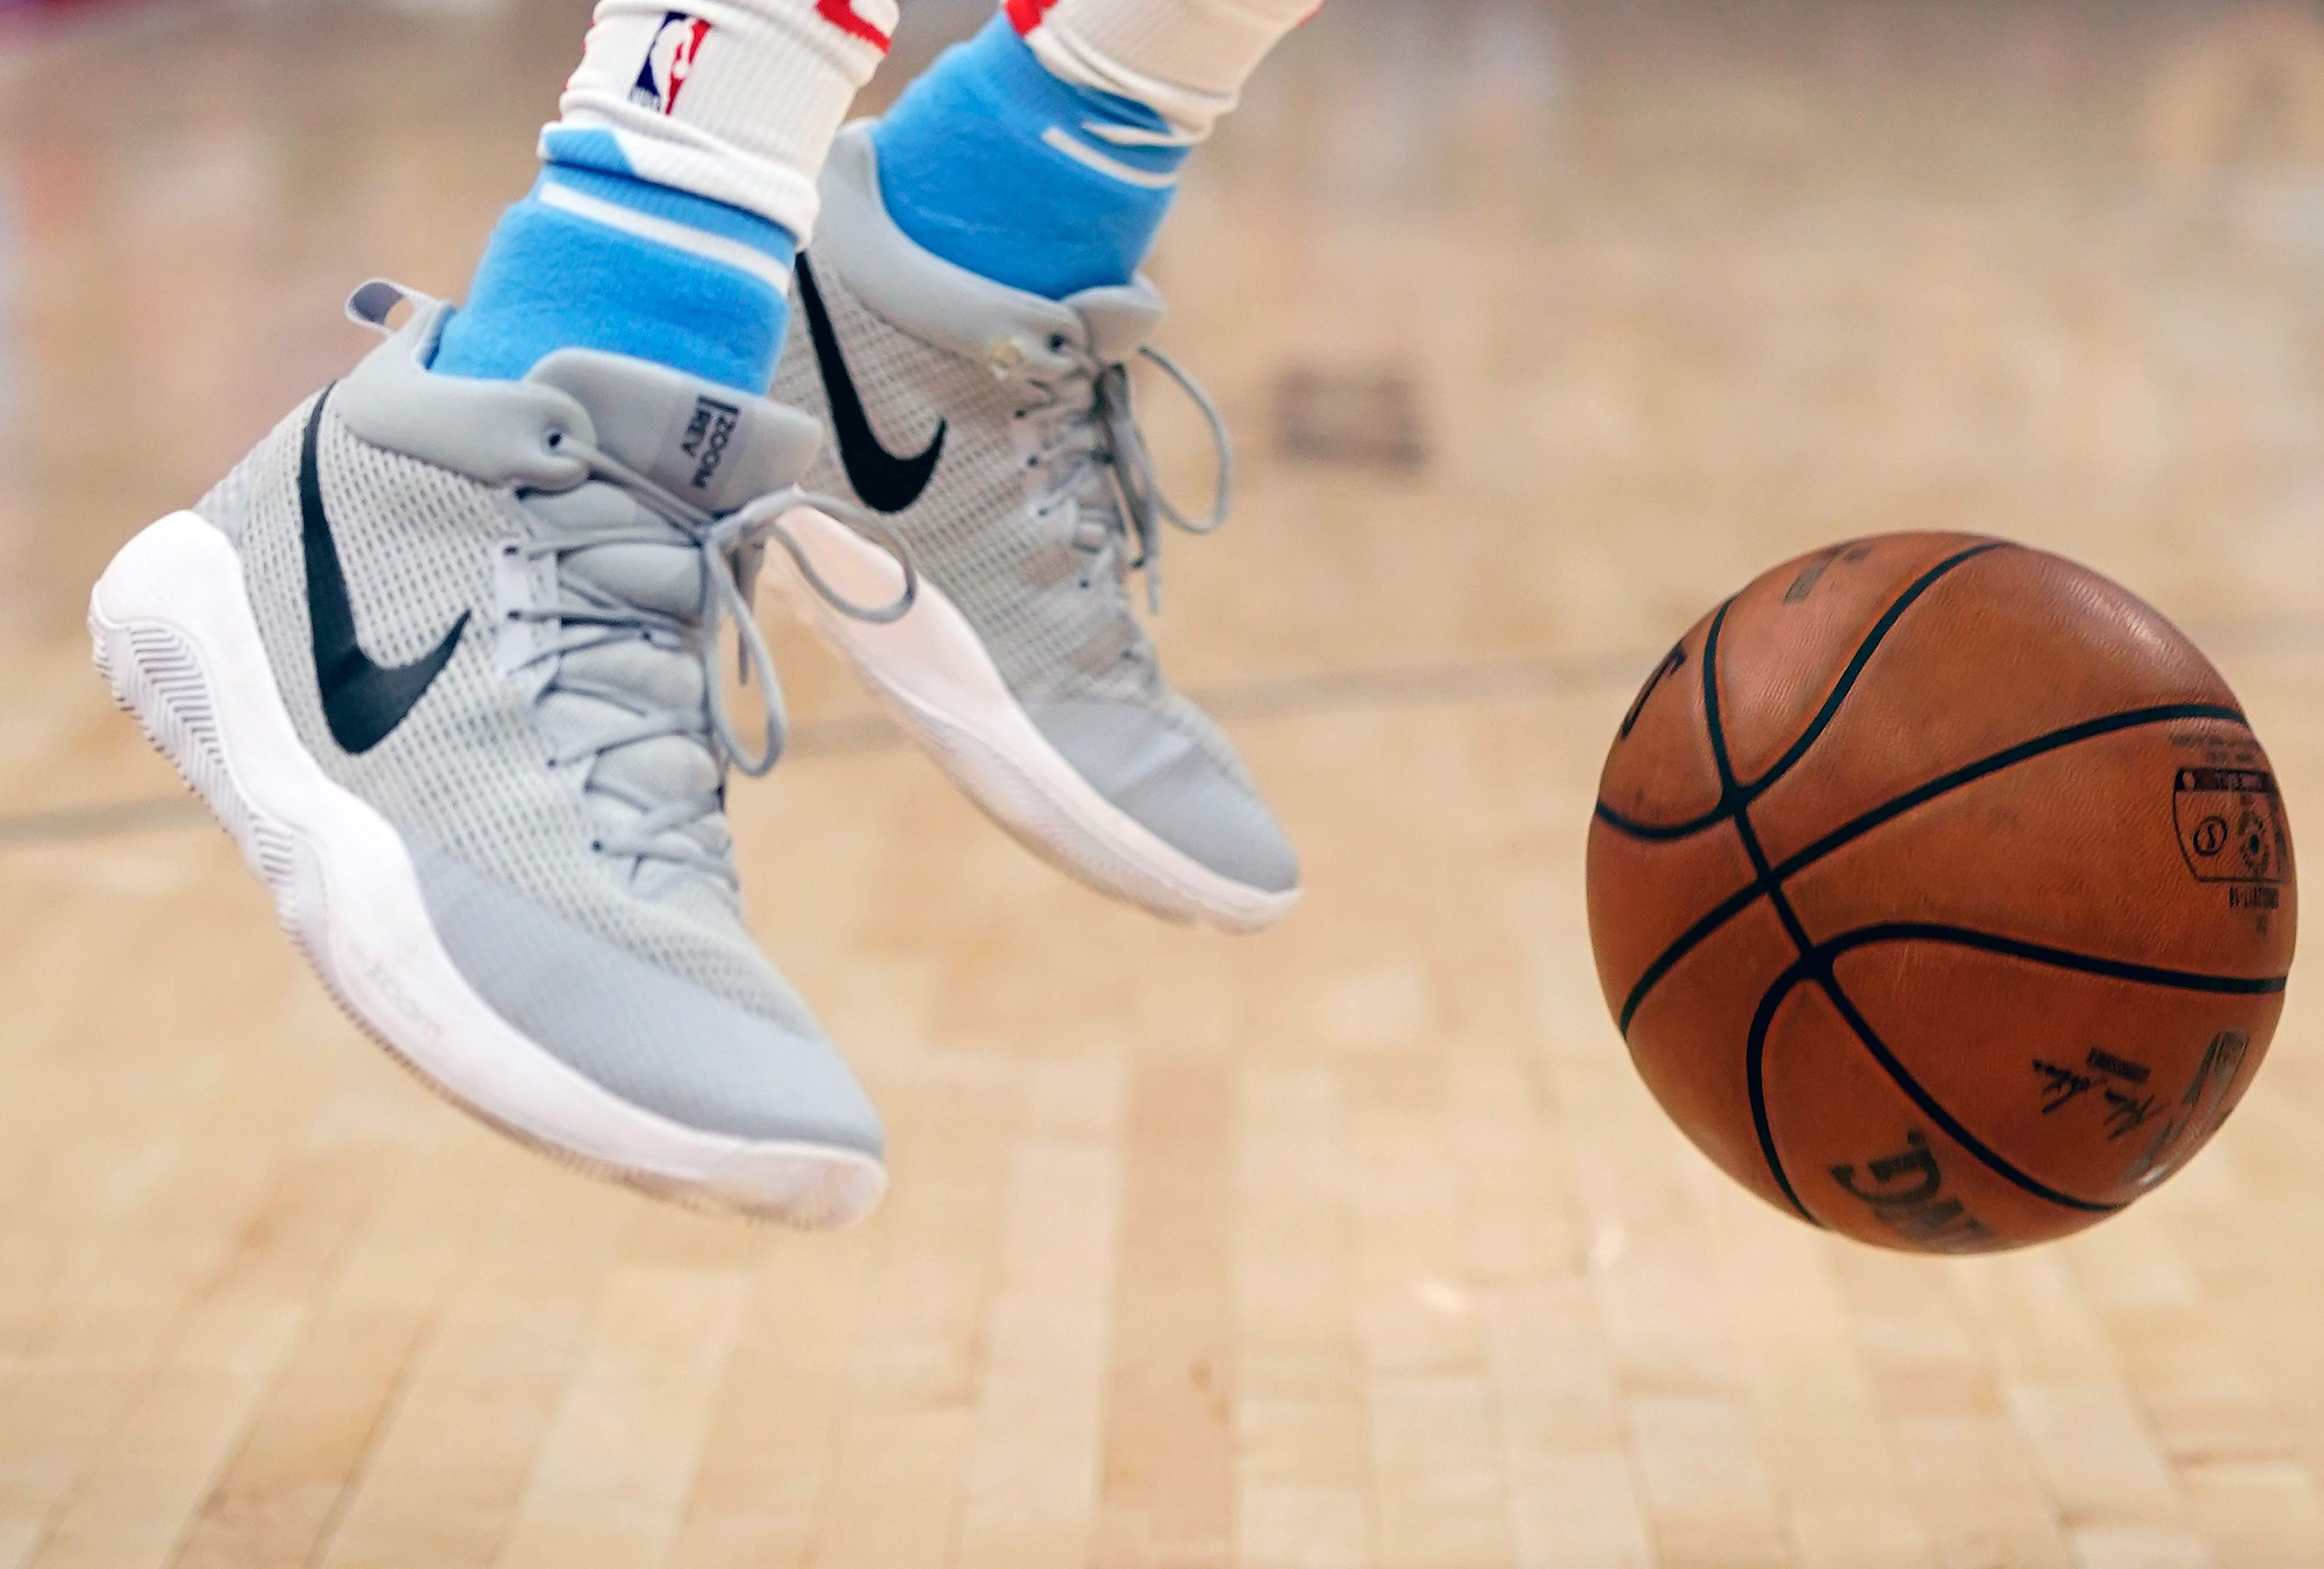 nike-zapatillas-balon-nba-getty.jpg